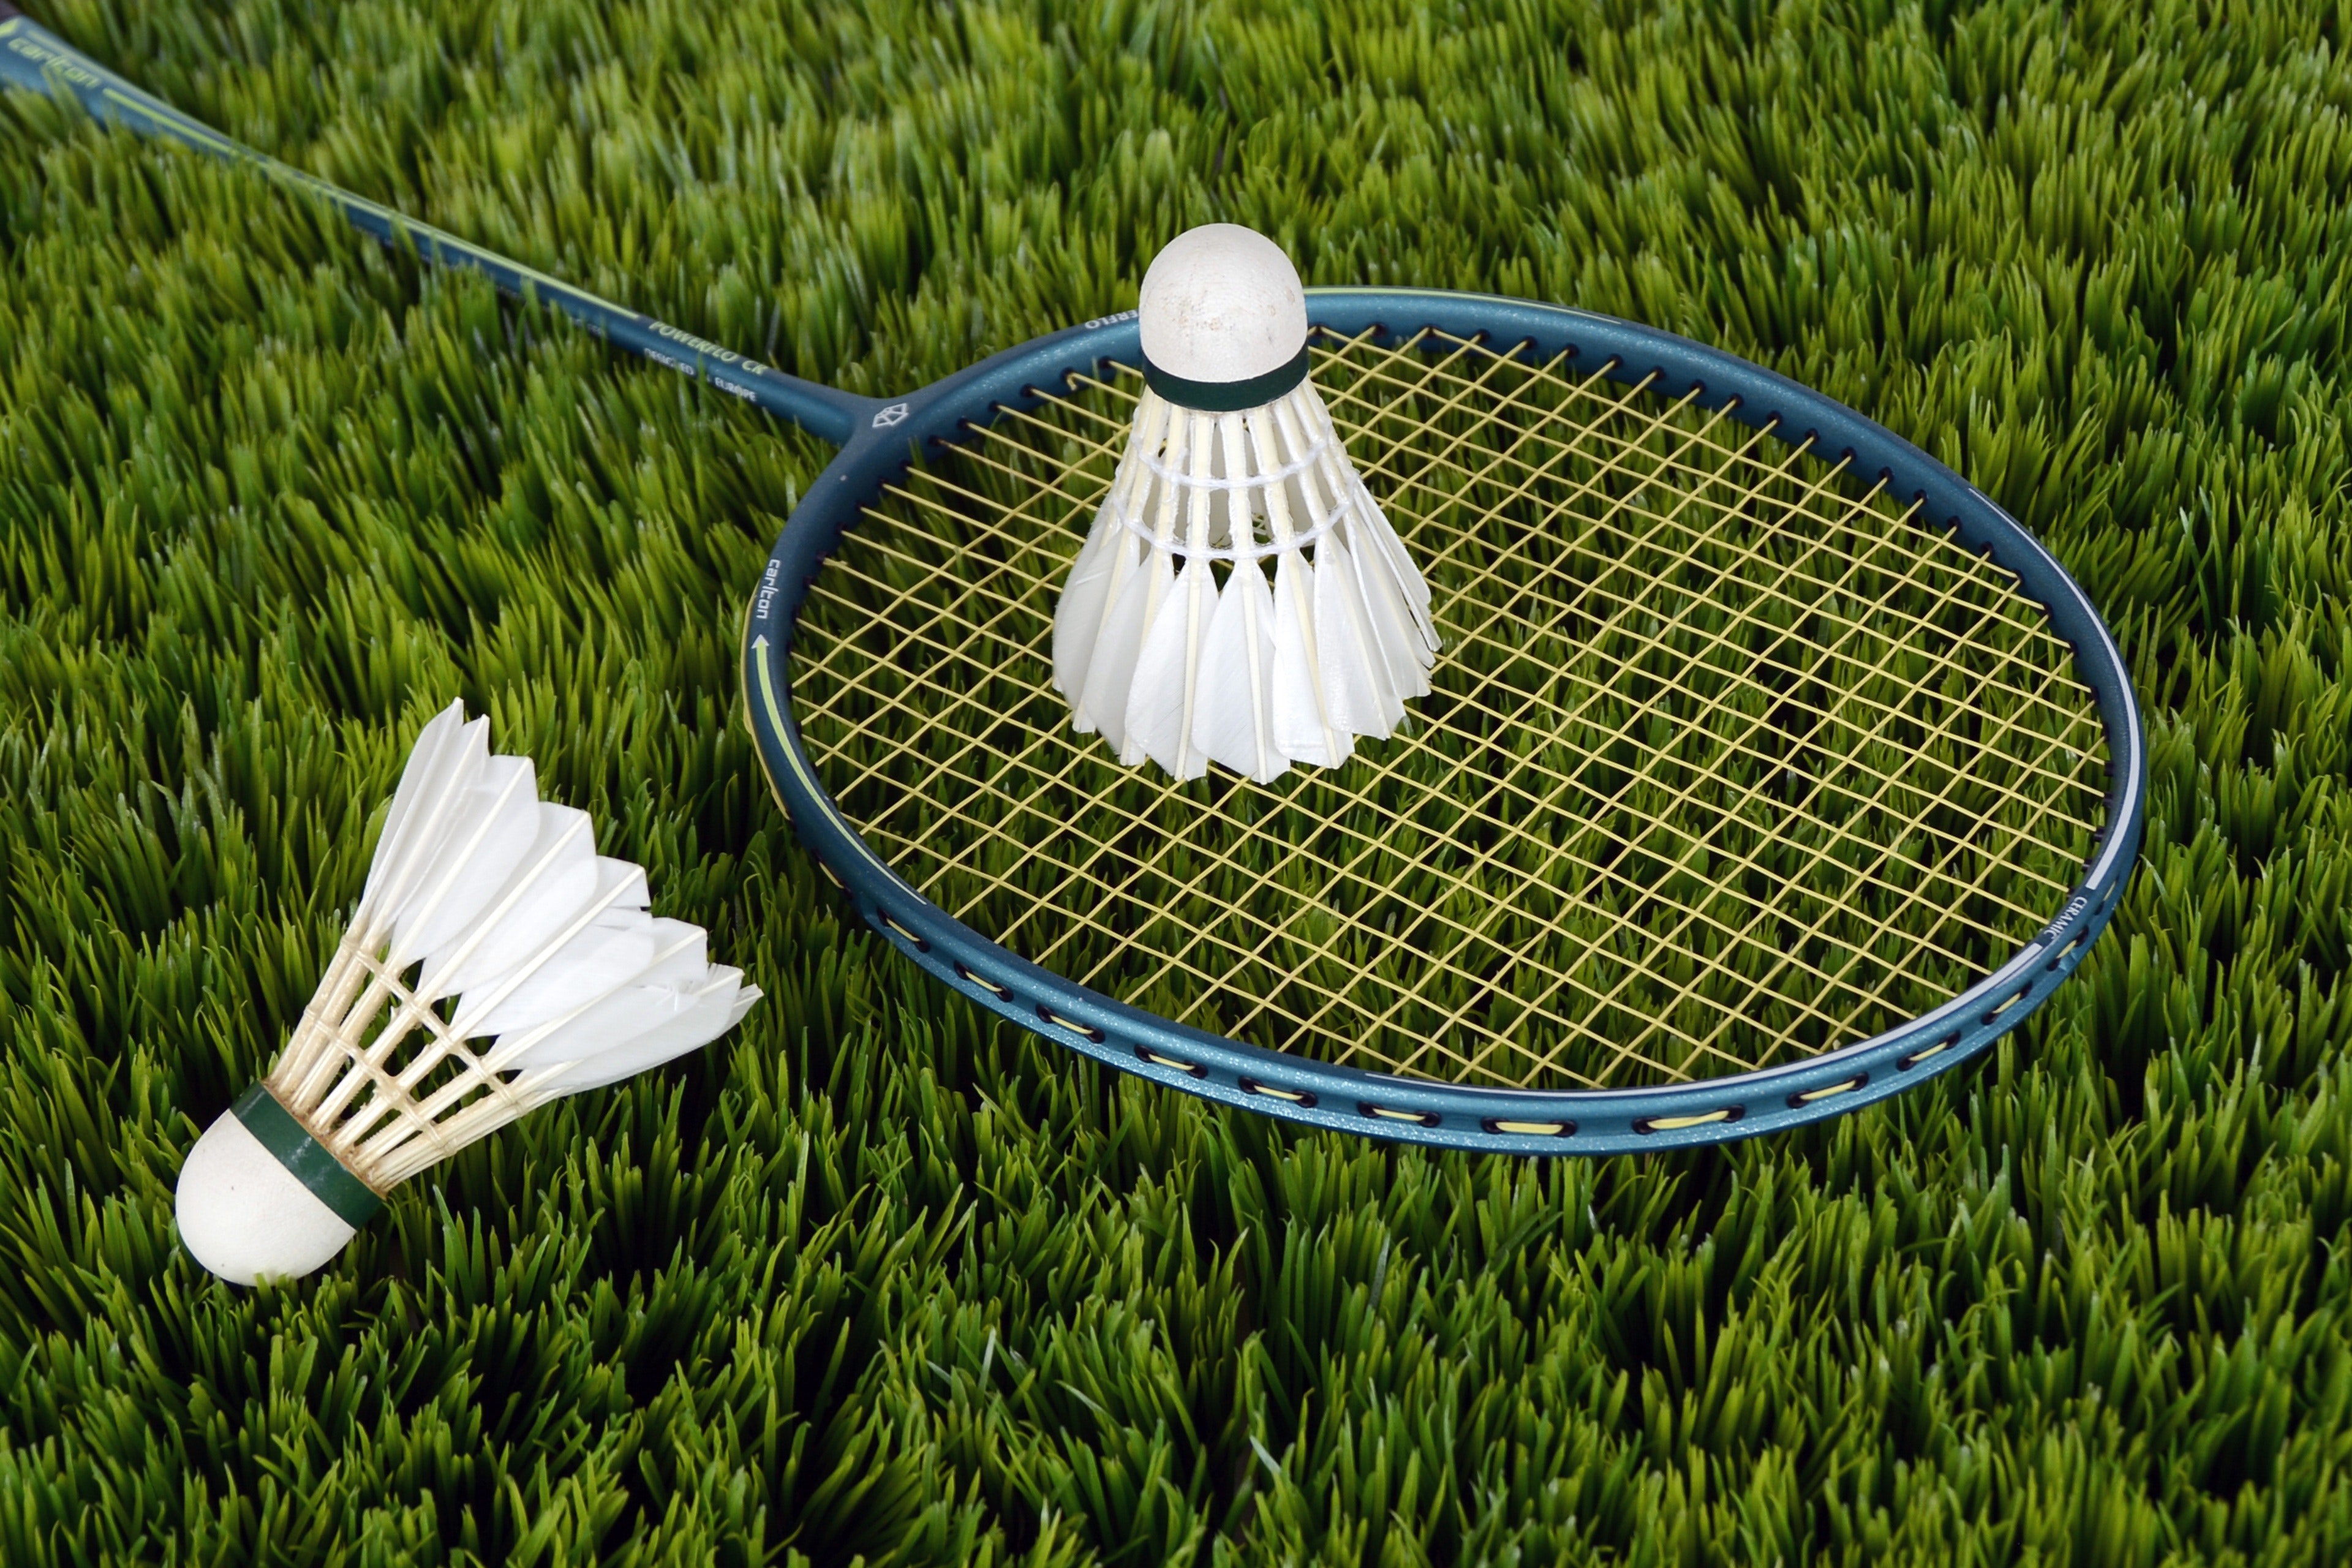 Badminton grass racket 115016